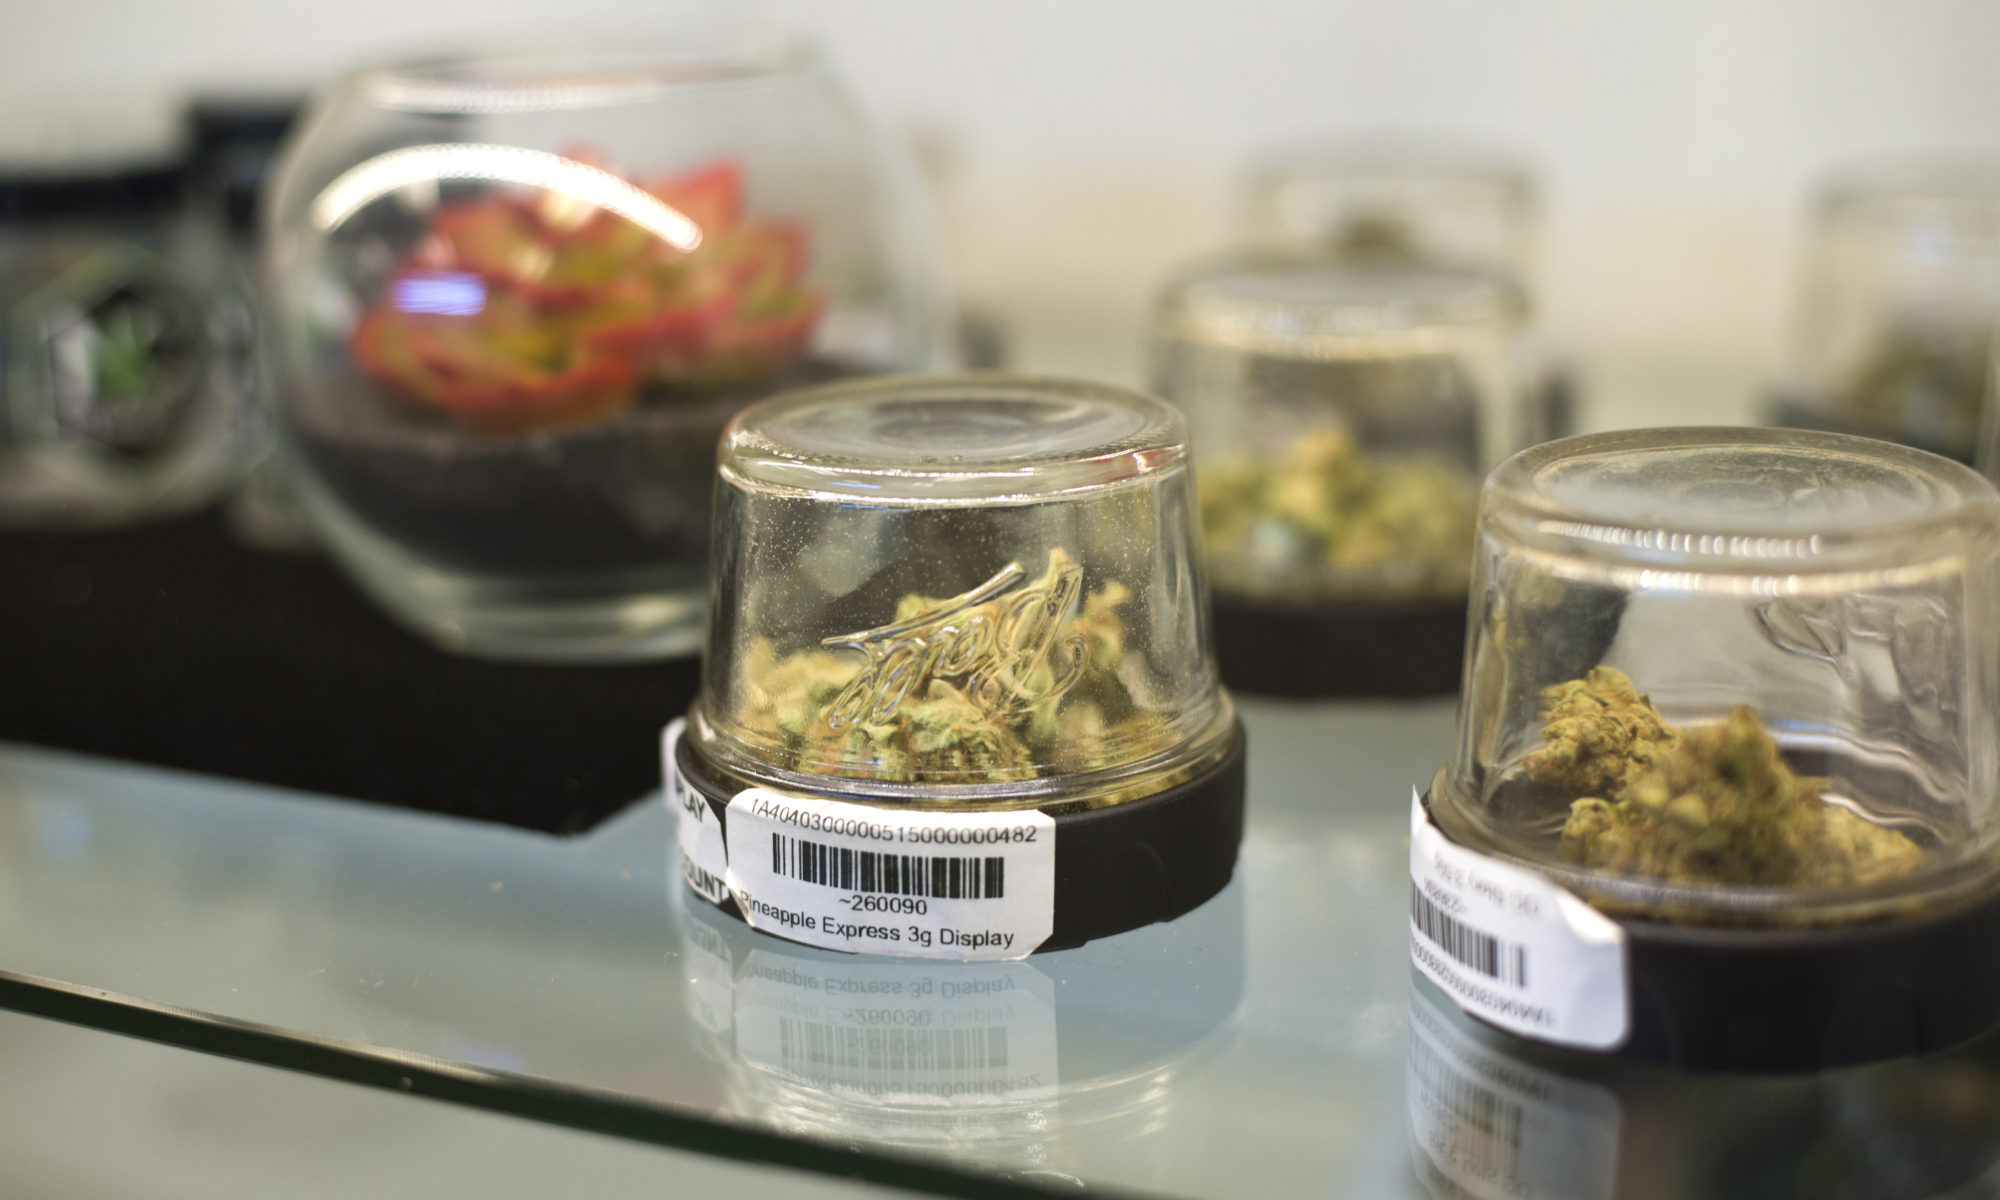 Marijuana displayed inside Inyo Fine Cannabis Dispensary